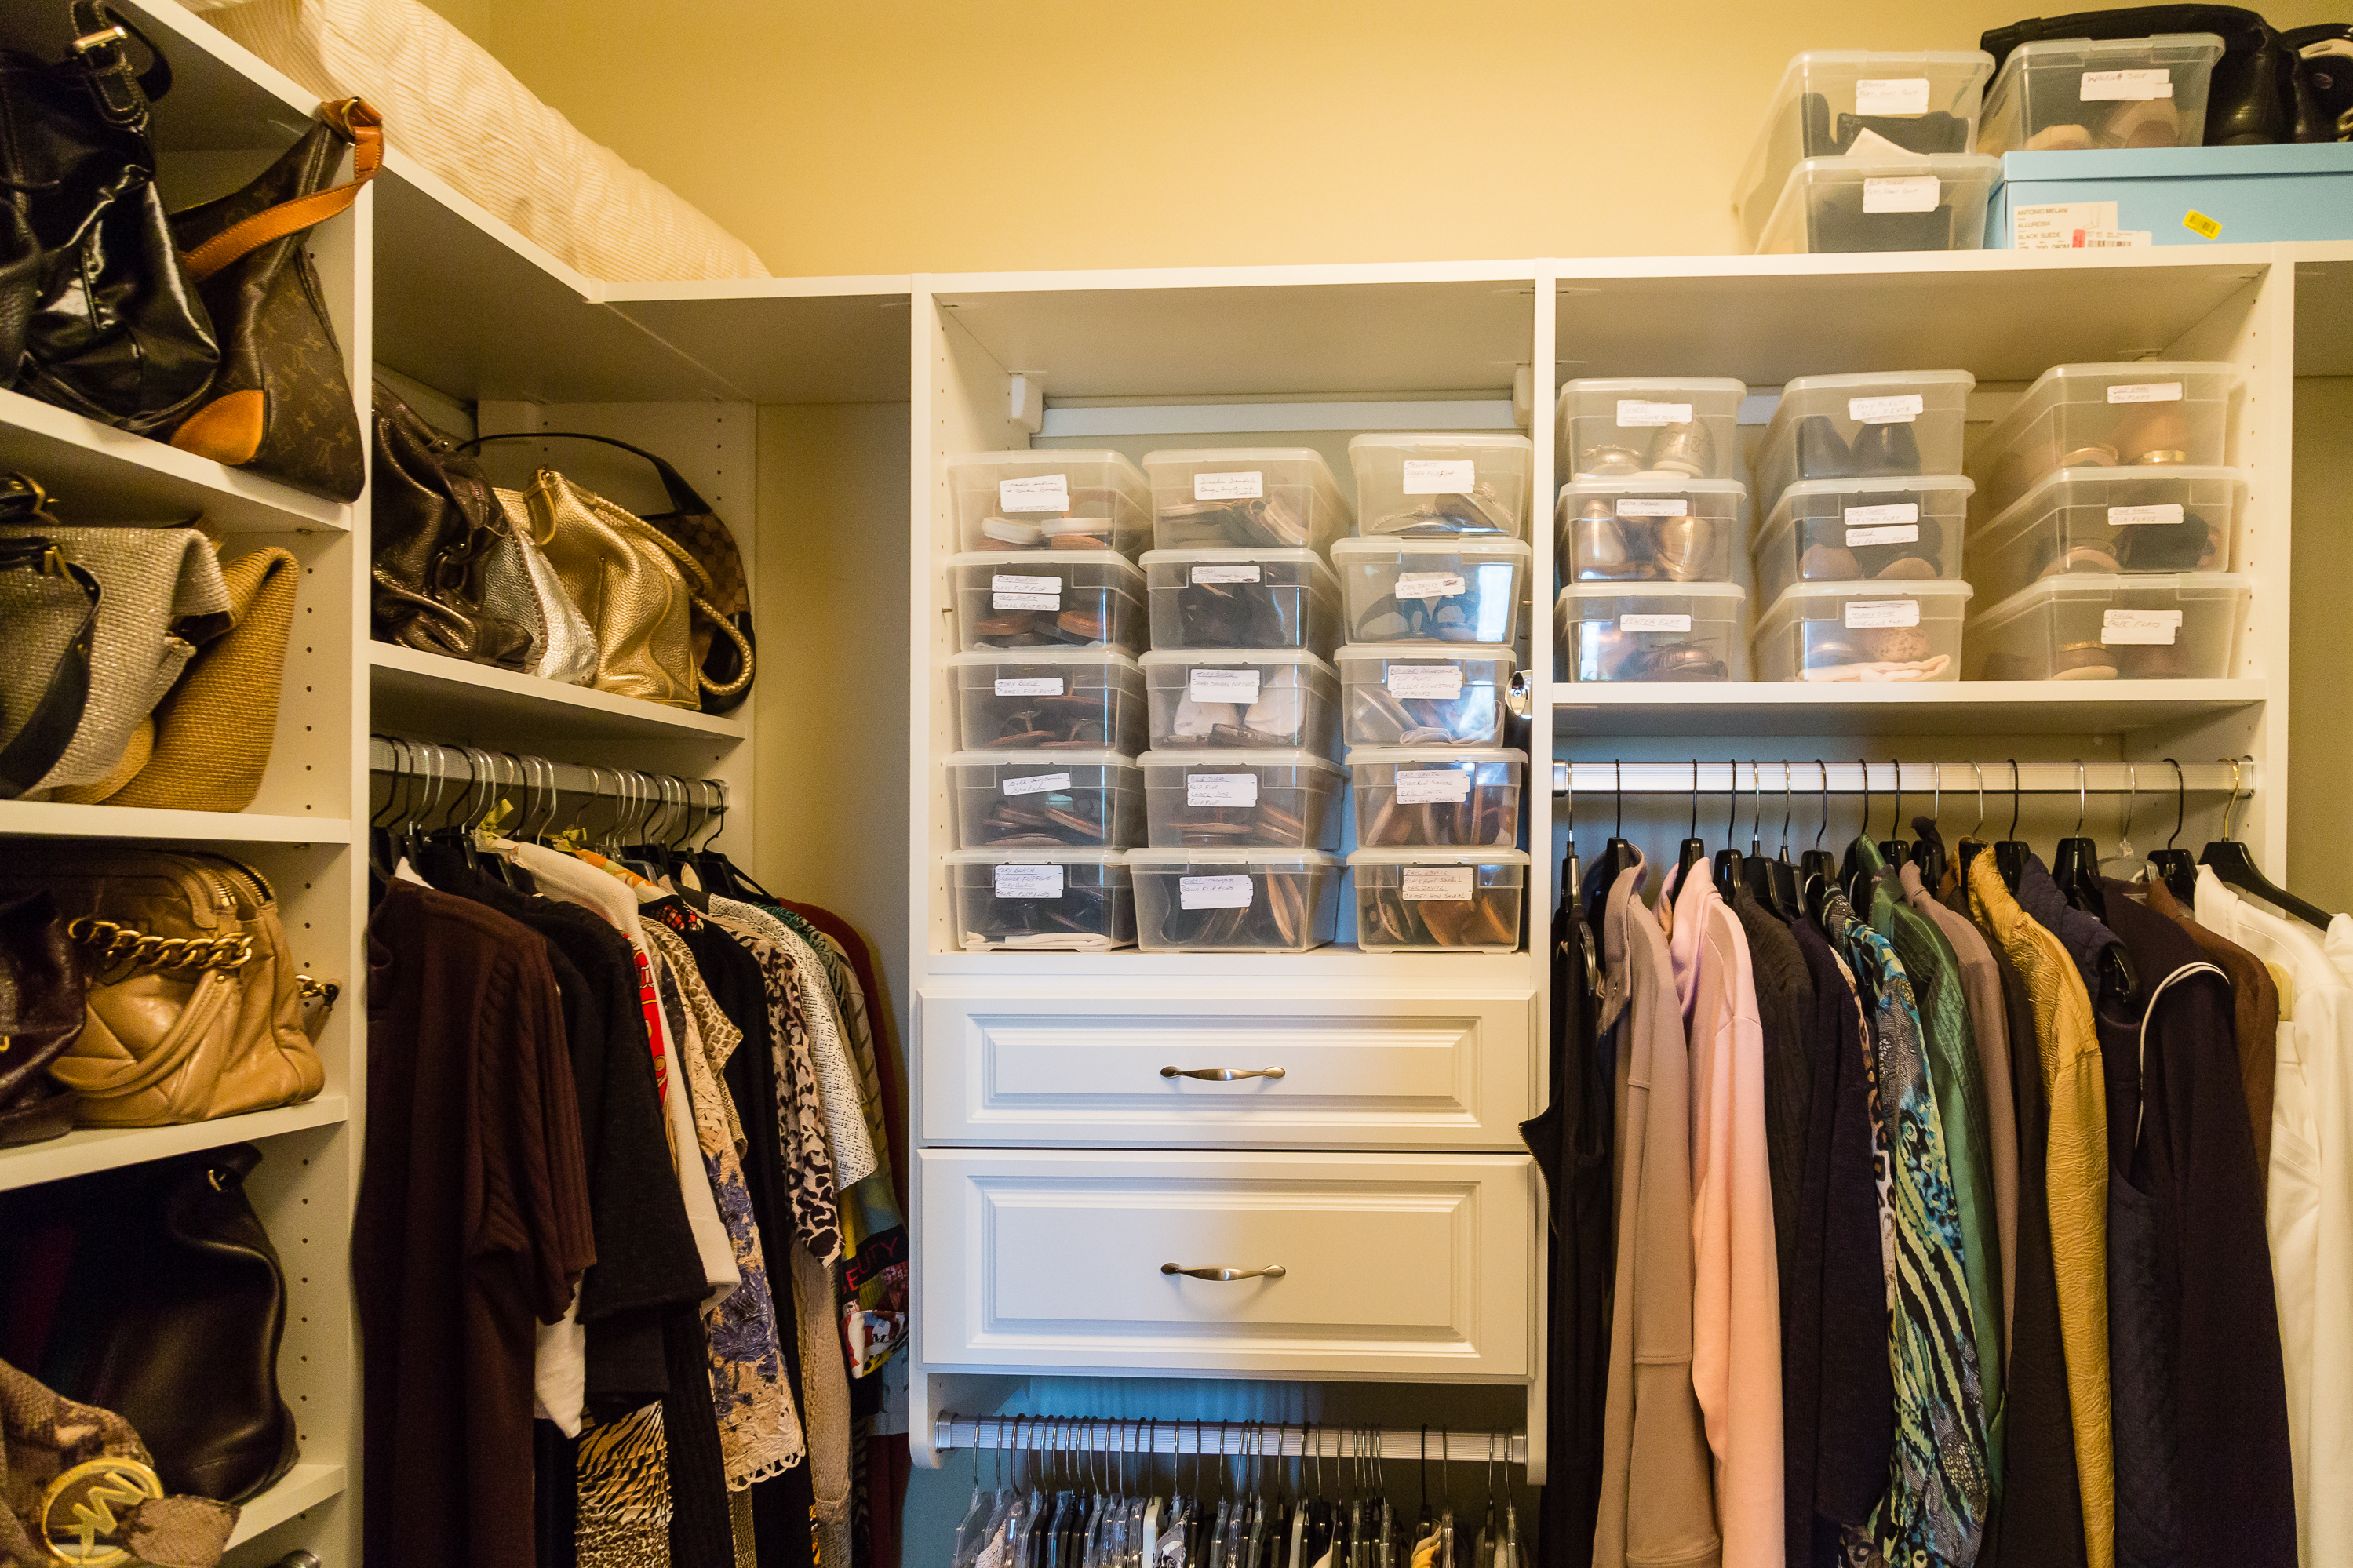 It's Time to Hire a Professional Organizer When You Notice These 3 Things